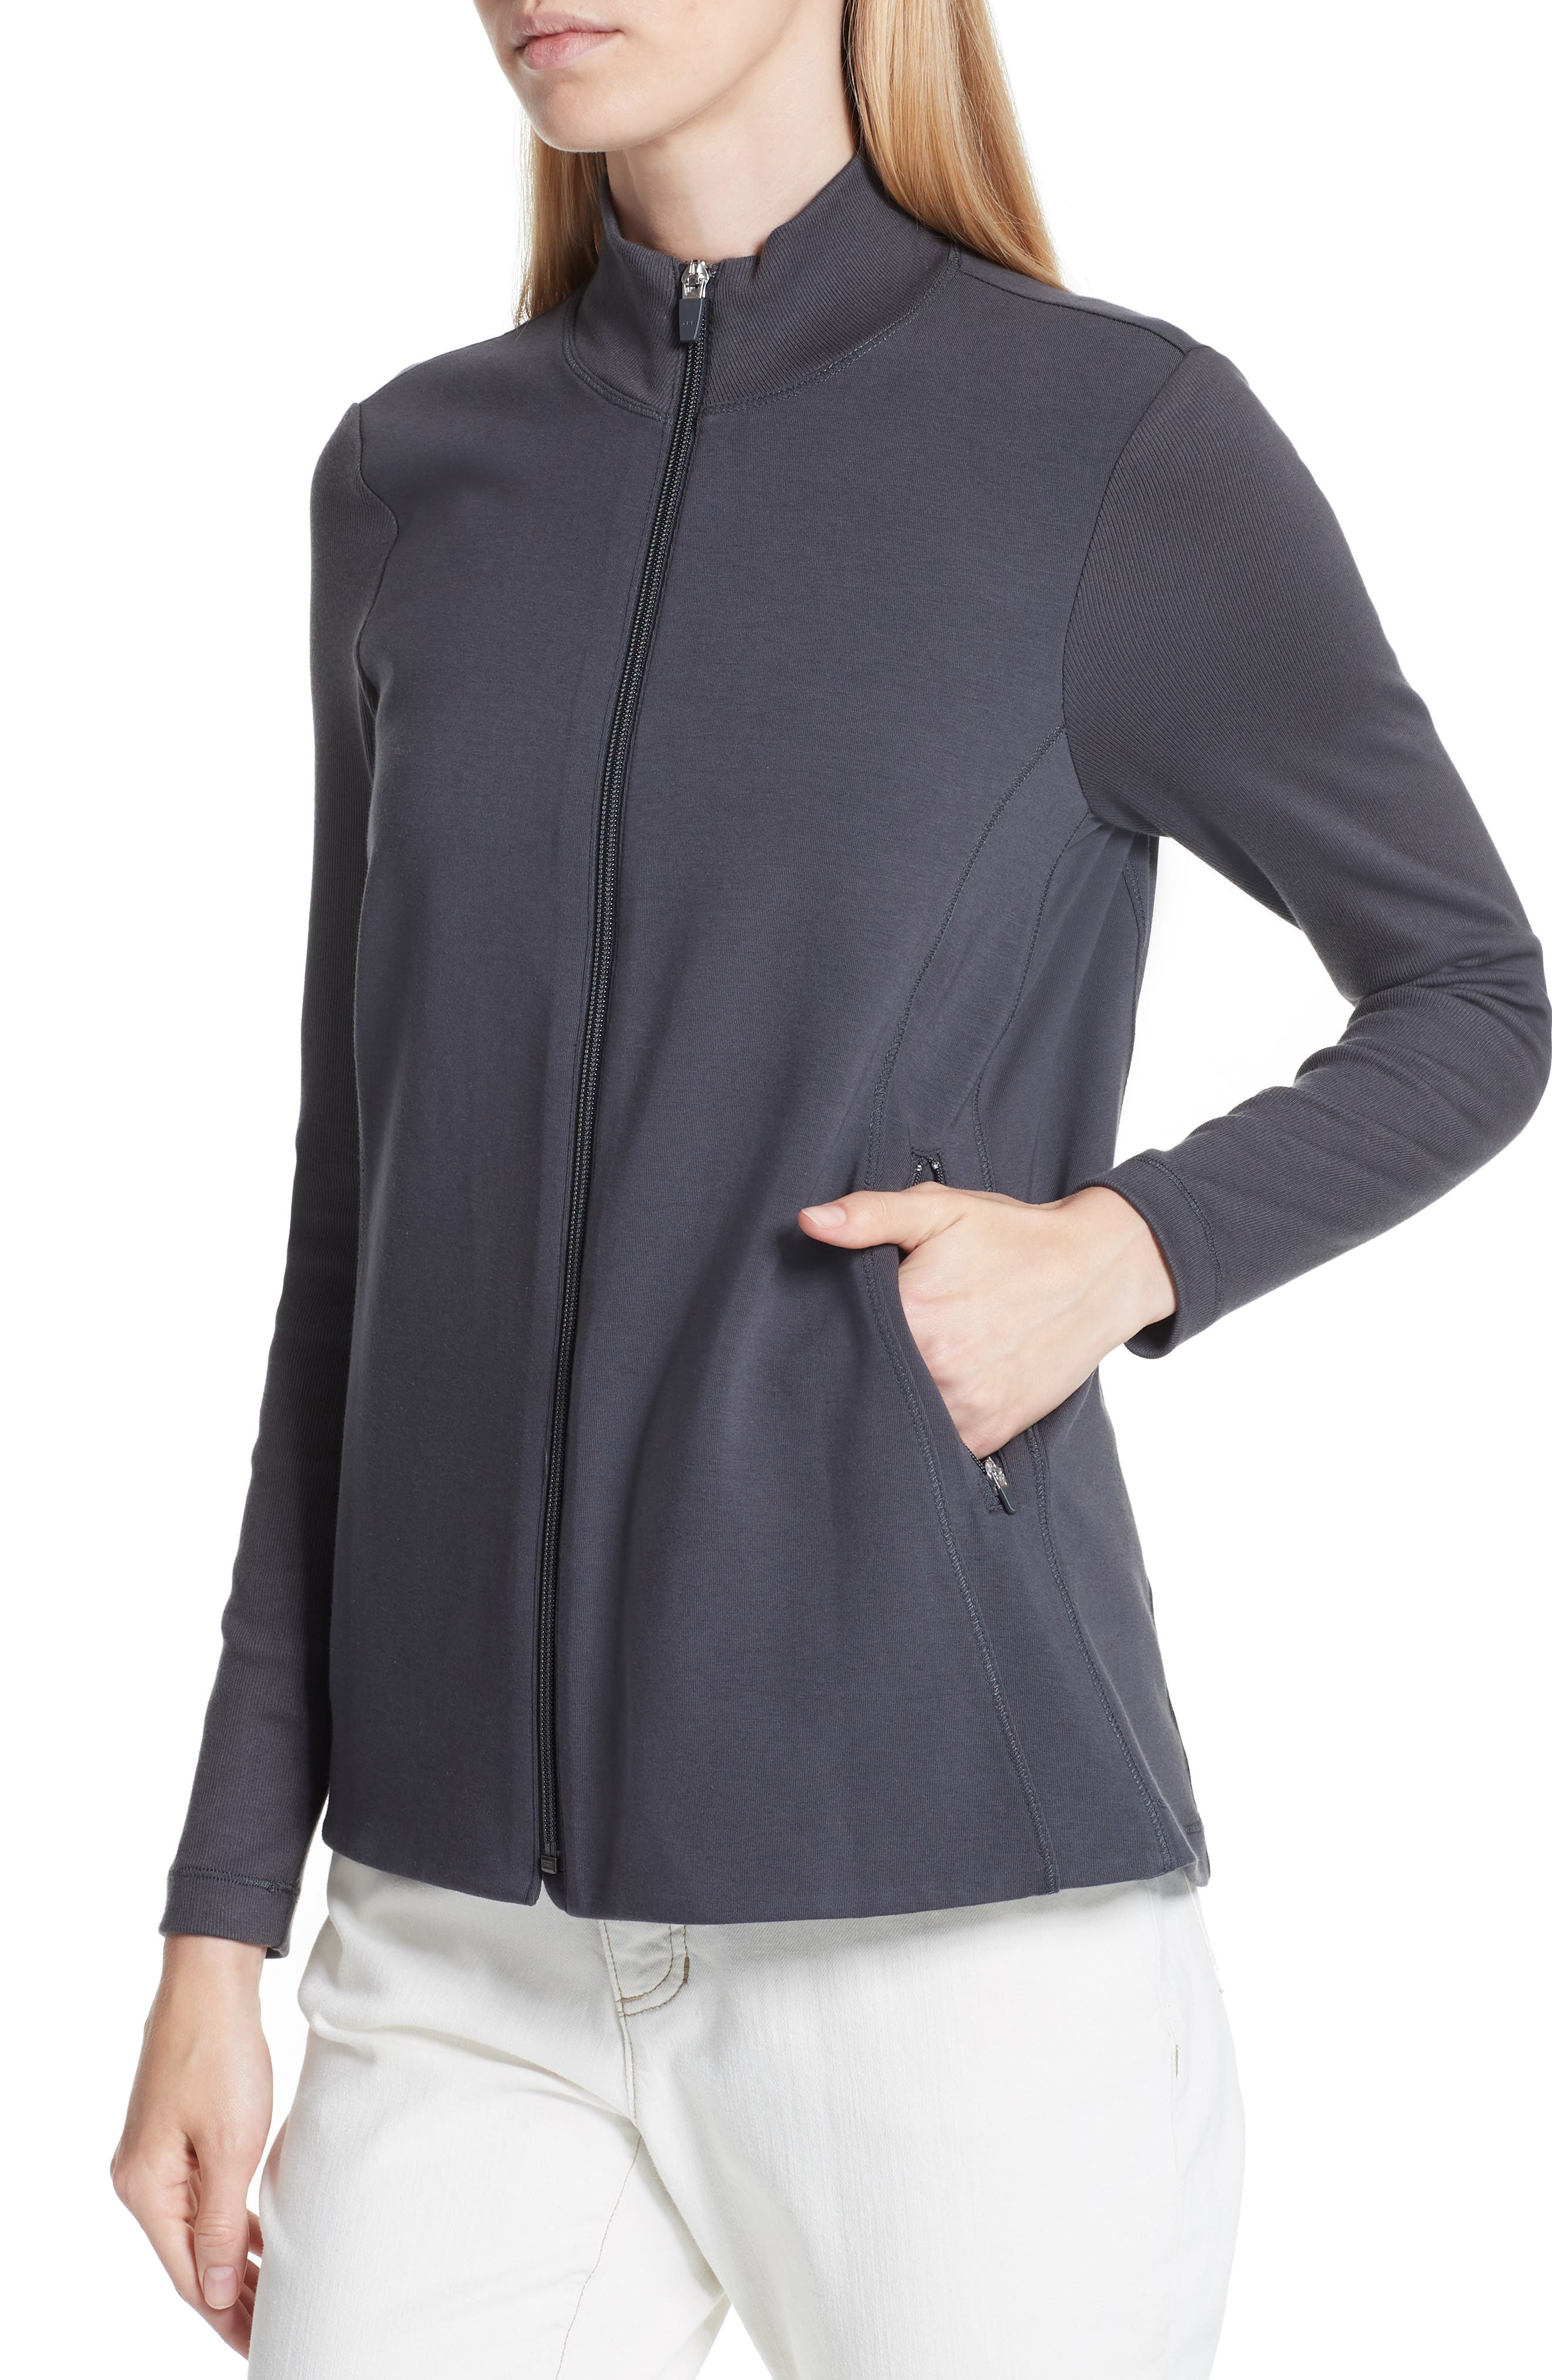 Mixed Organic Cotton Stretch Knit Jacket,                             Alternate thumbnail 4, color,                             Graphite